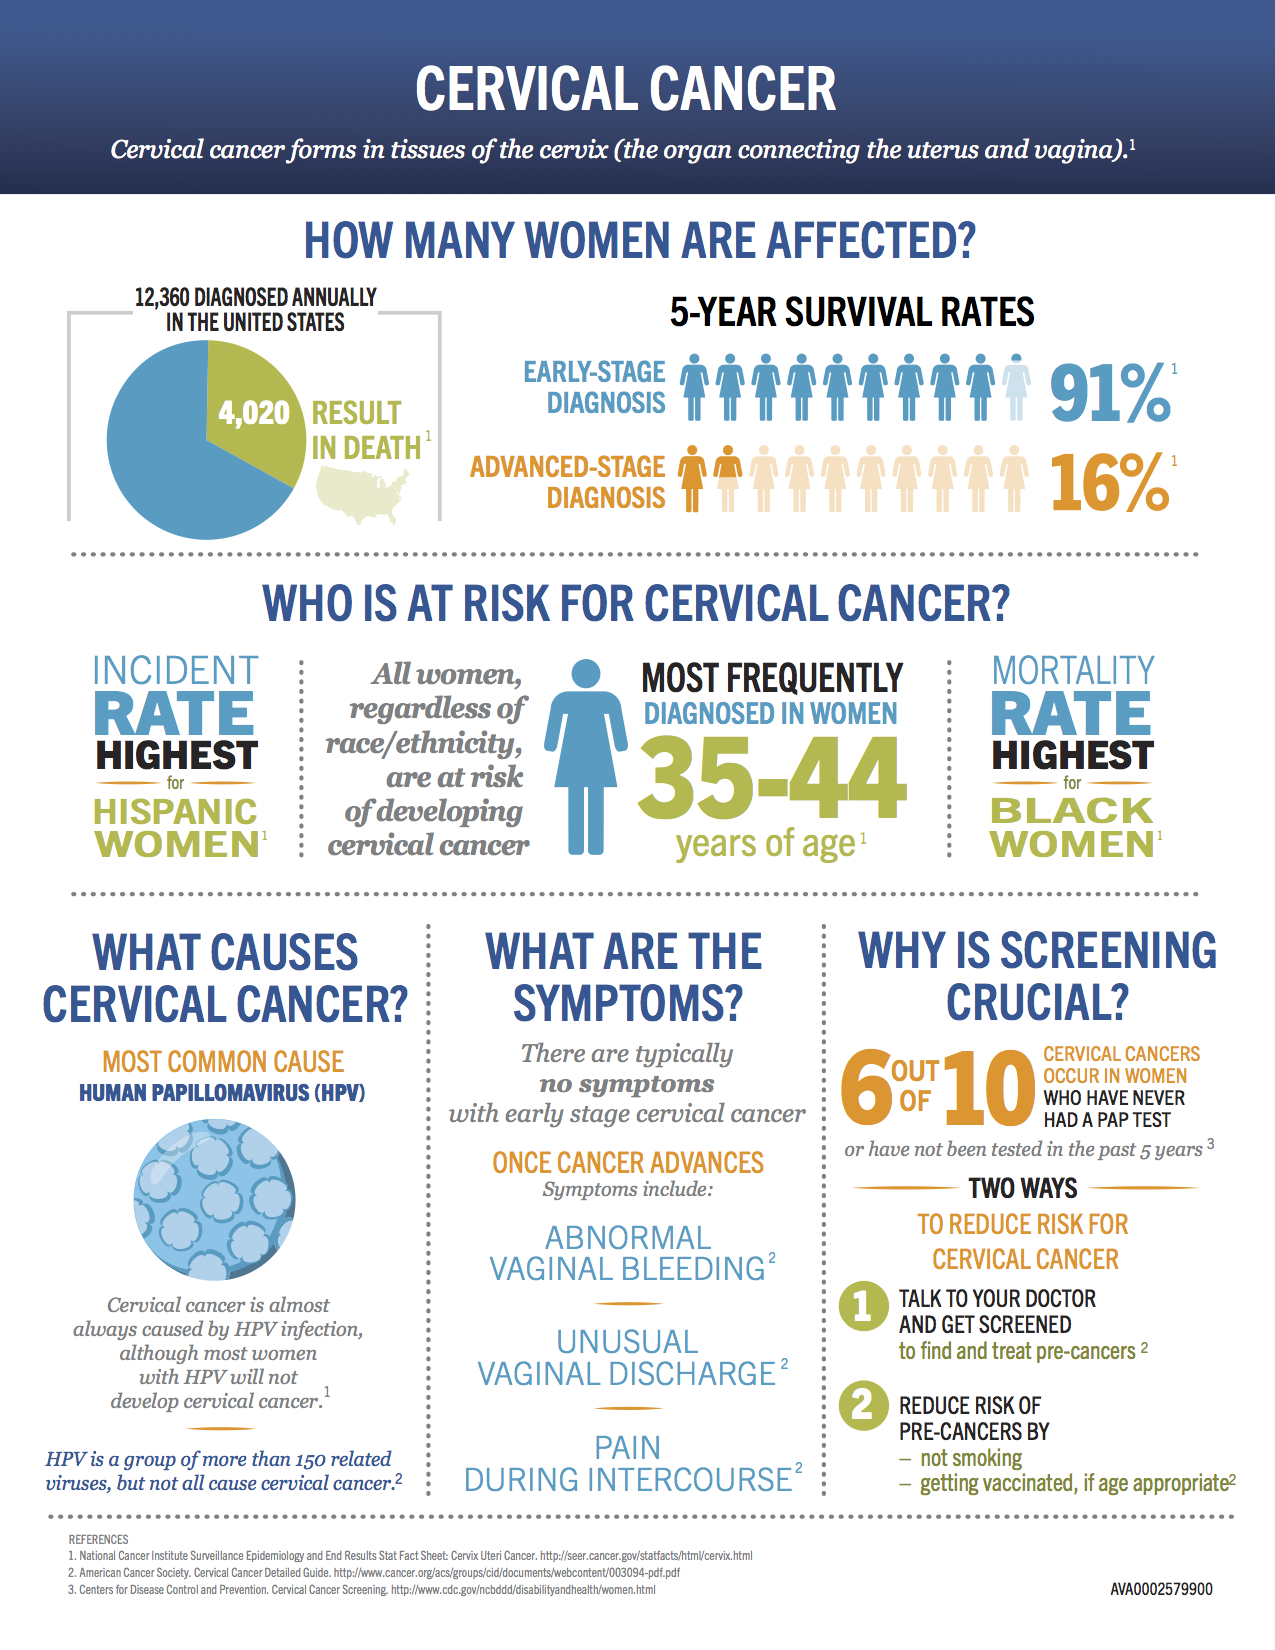 Genentech: What is Cervical Cancer?